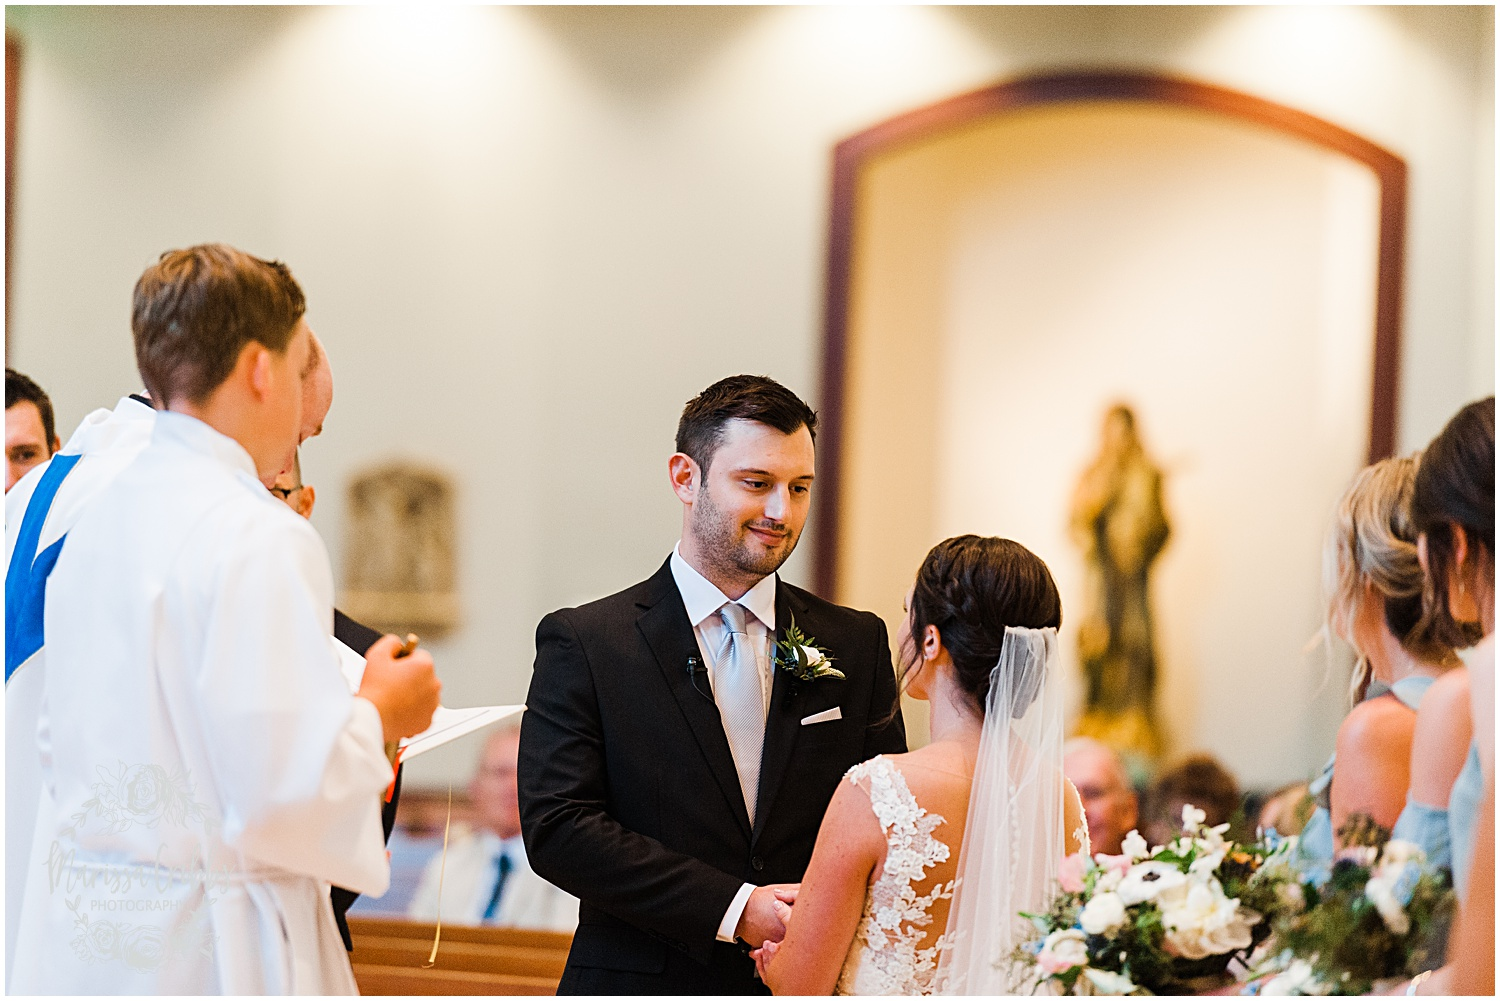 KELLY & MITCH MARRIED BLOG | MARISSA CRIBBS PHOTOGRAPHY | THE EVERLY EVENT SPACE_8840.jpg